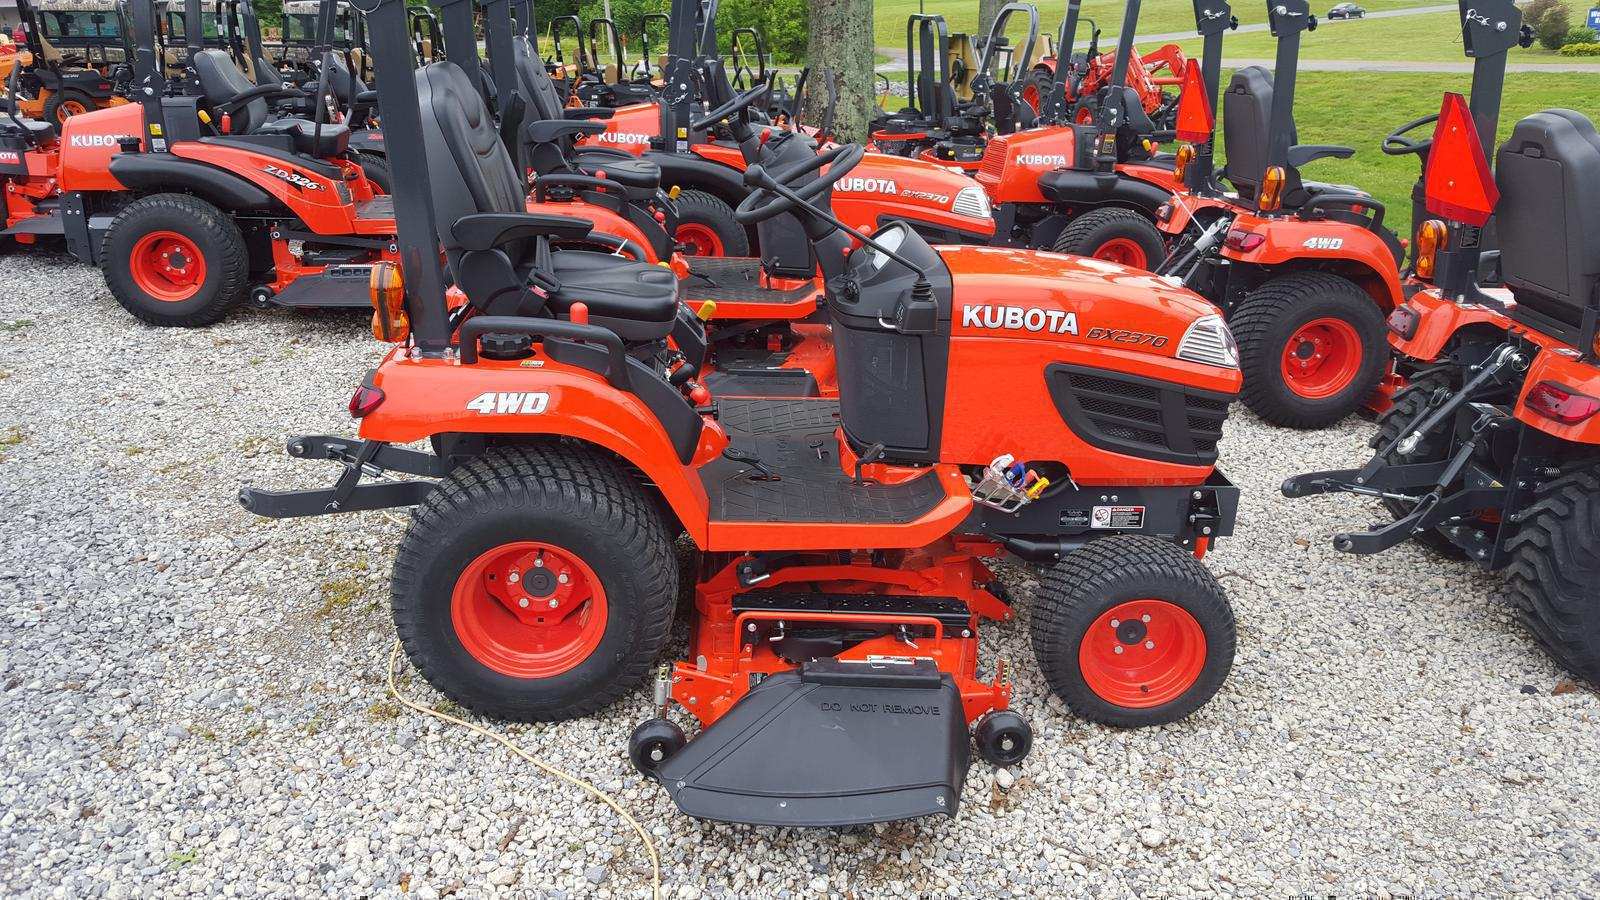 Kubota tractors for sale in kentucky - Horizon Lawn And Tractor